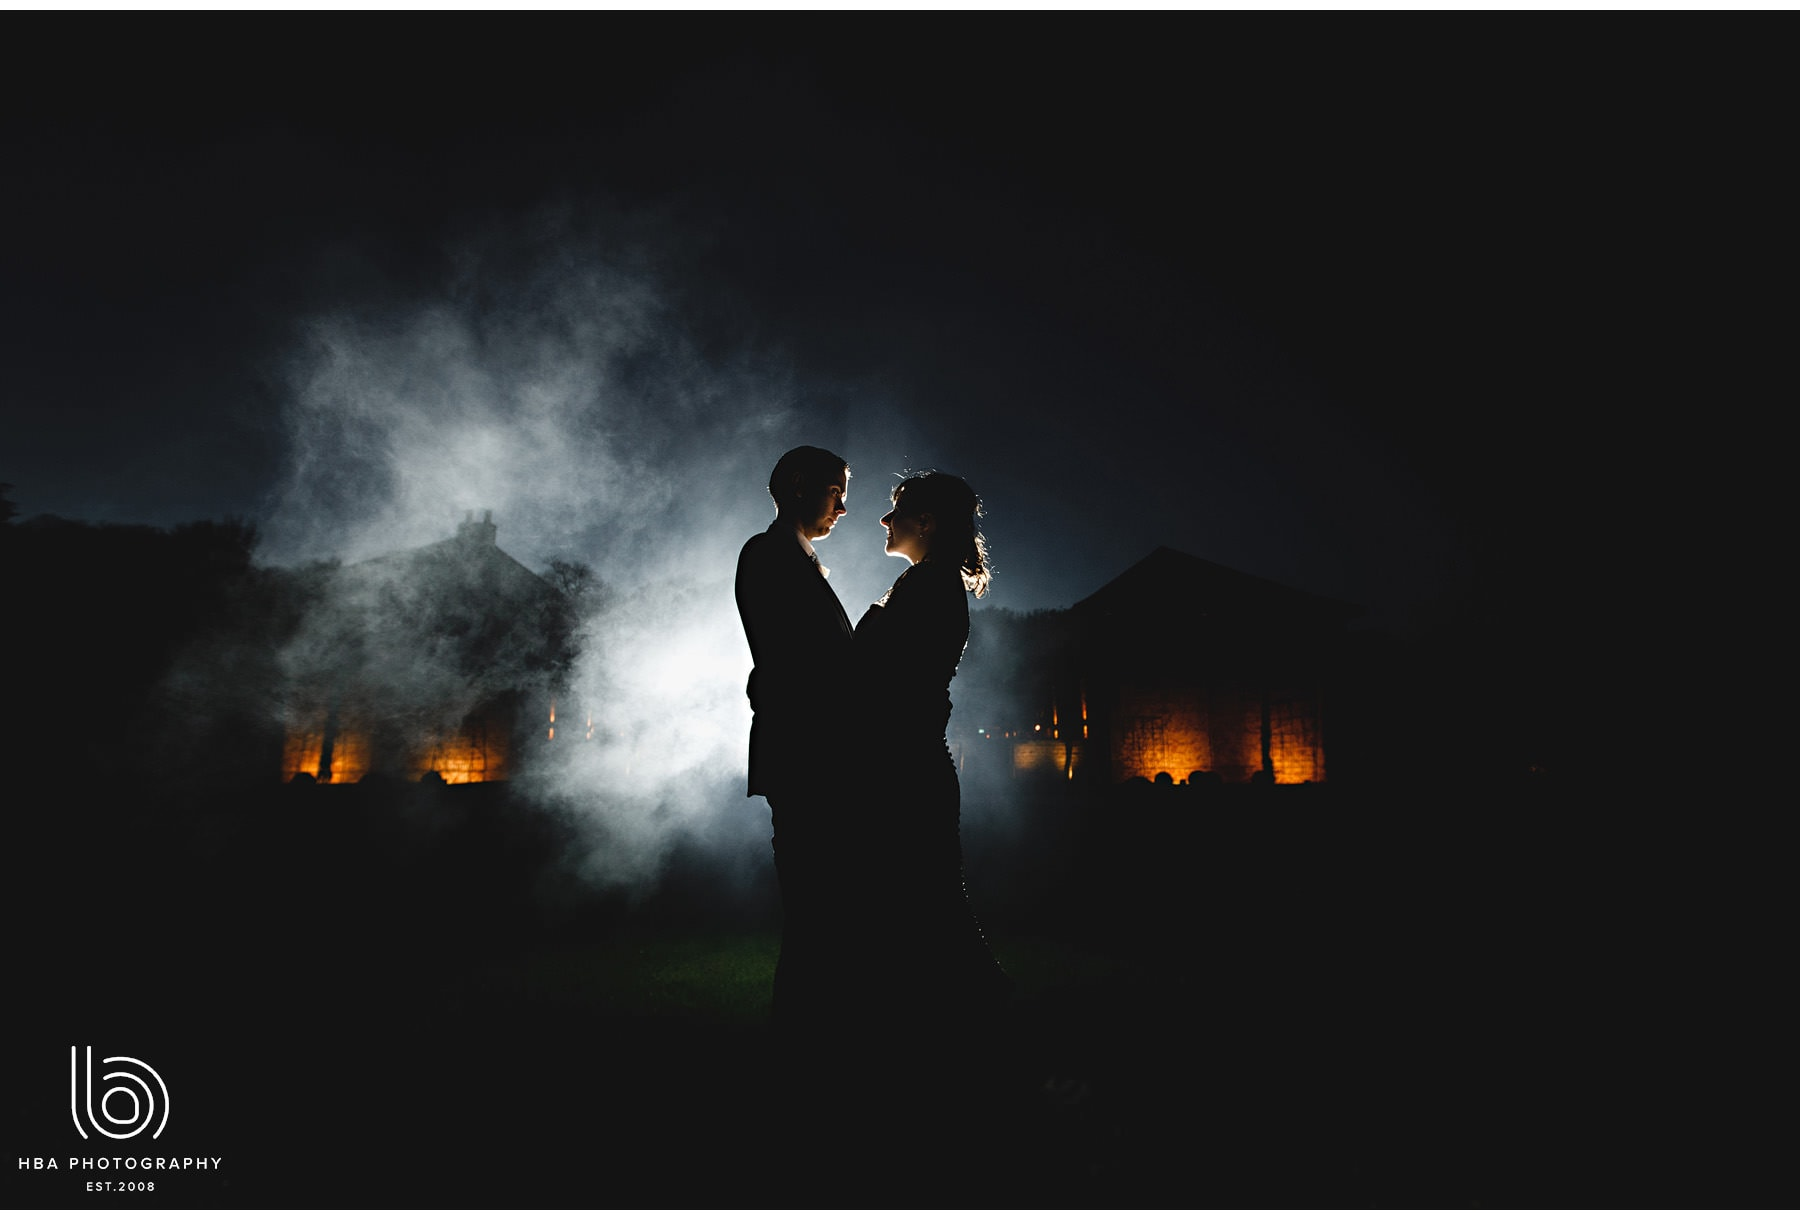 the bride and groom at night in the mist.